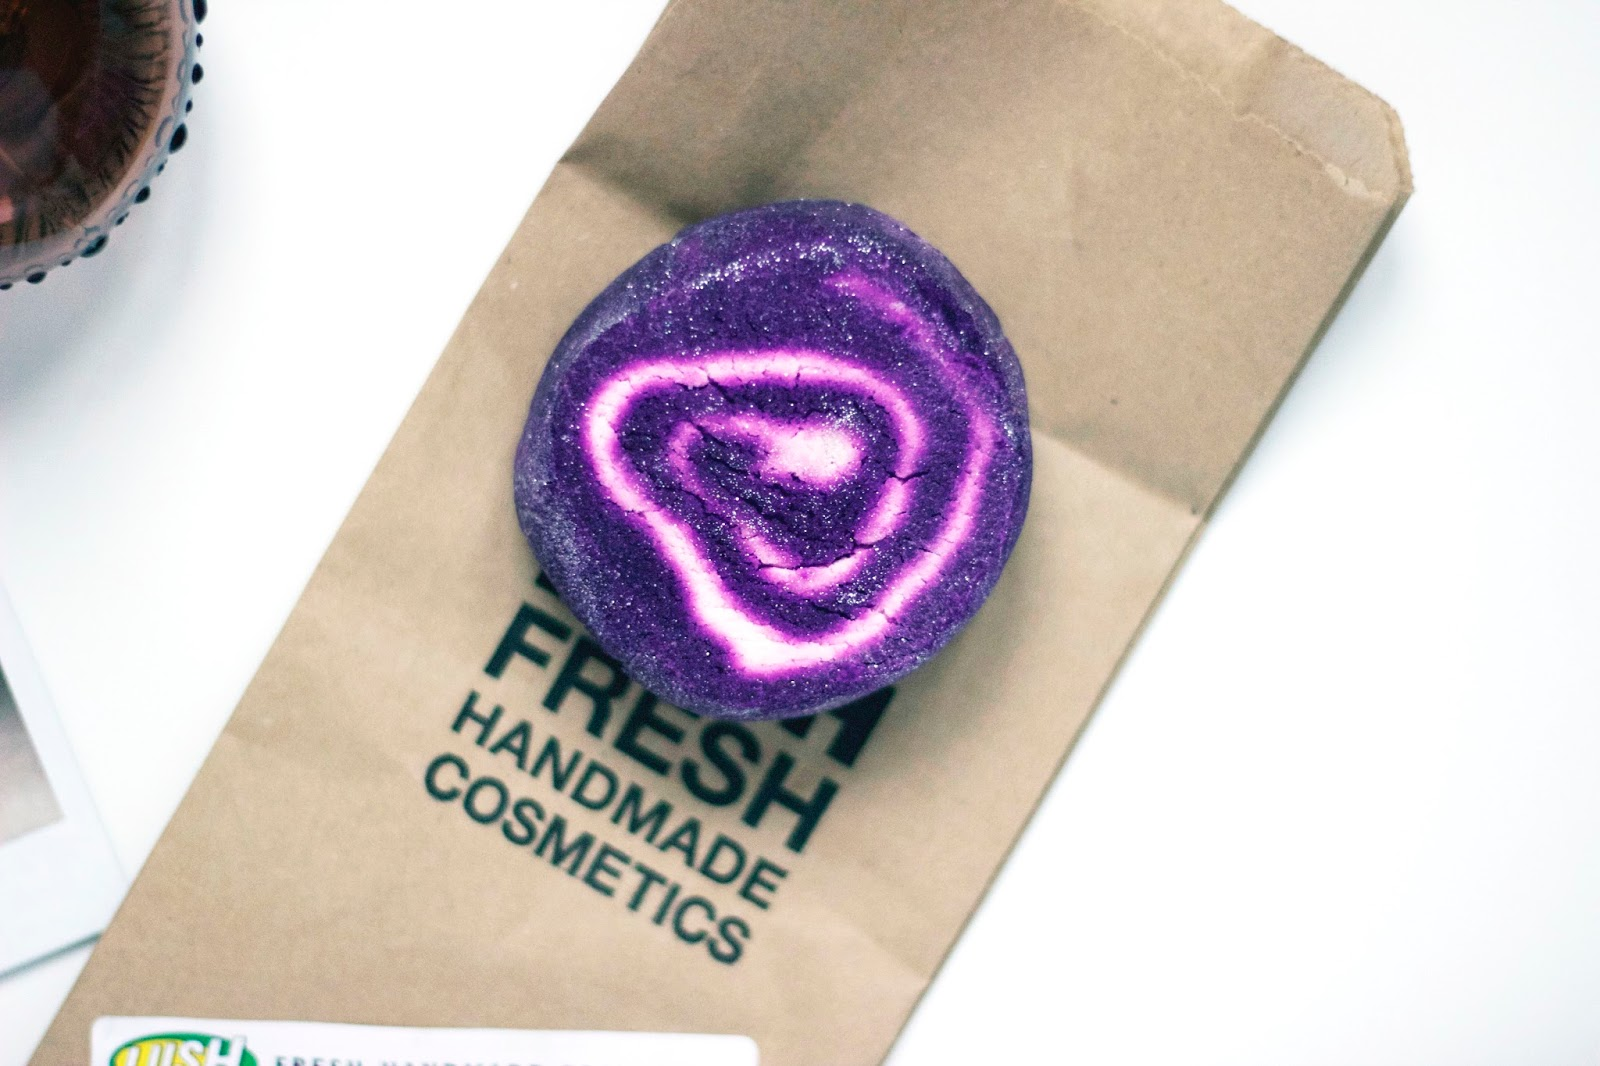 Lush Bubble Bar, Lush Bubble Bar Bar Humbug, Lush, UK Bloggers, Beauty, Review, Beauty Bloggers, katiewrites, Katie Writes Blog, Katie Writes, KatieWritesUK, katiebwrites, lush, bubble bars, bar humbug, bubbles,